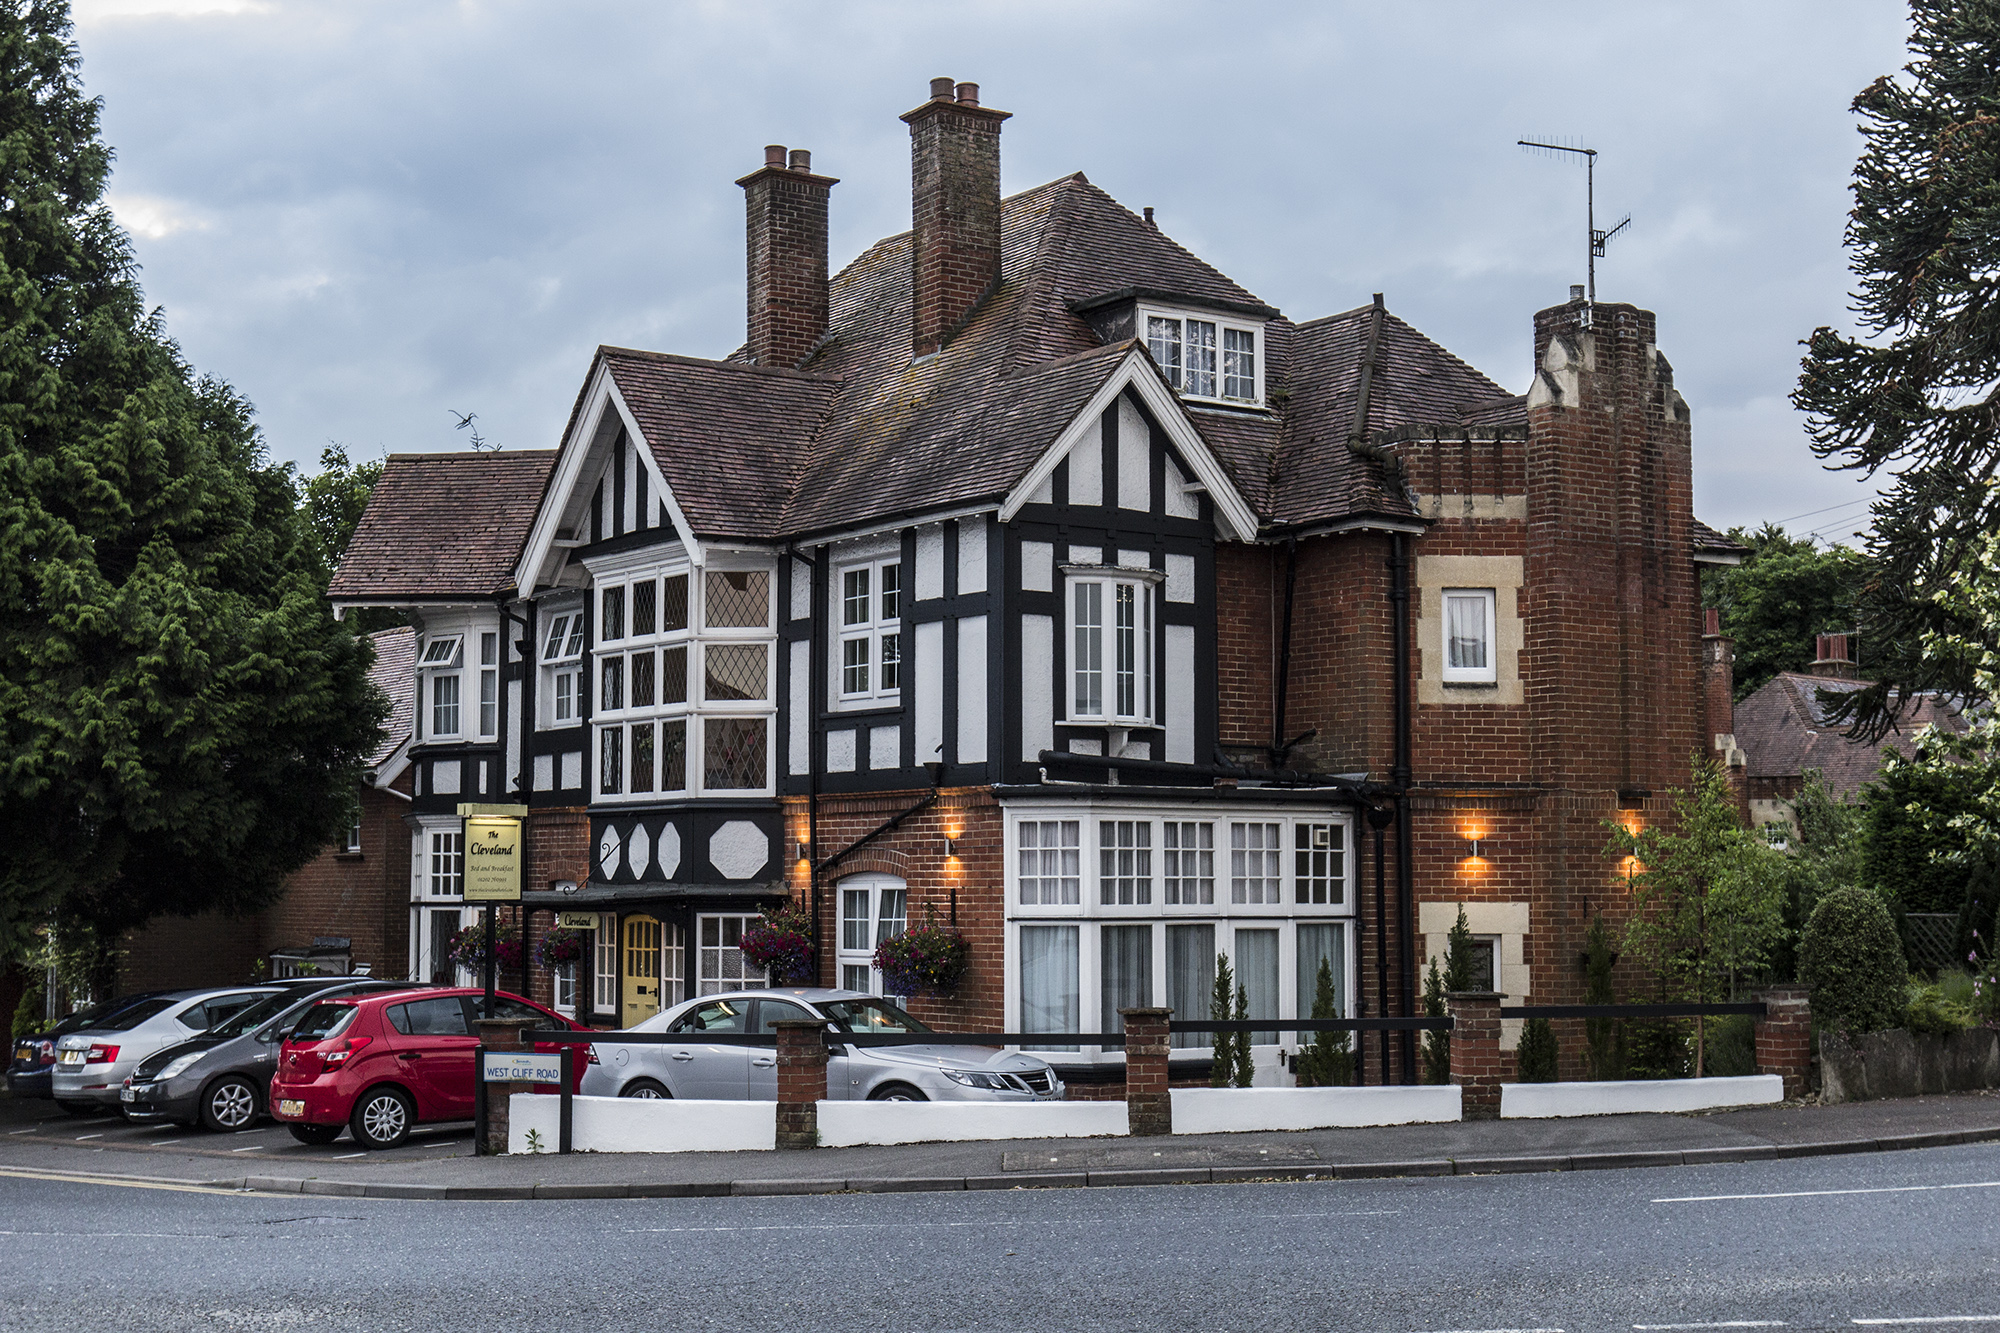 Holiday Accommodation in Westbourne. The Cleveland Hotel. West Cliff Road, Westbourne.